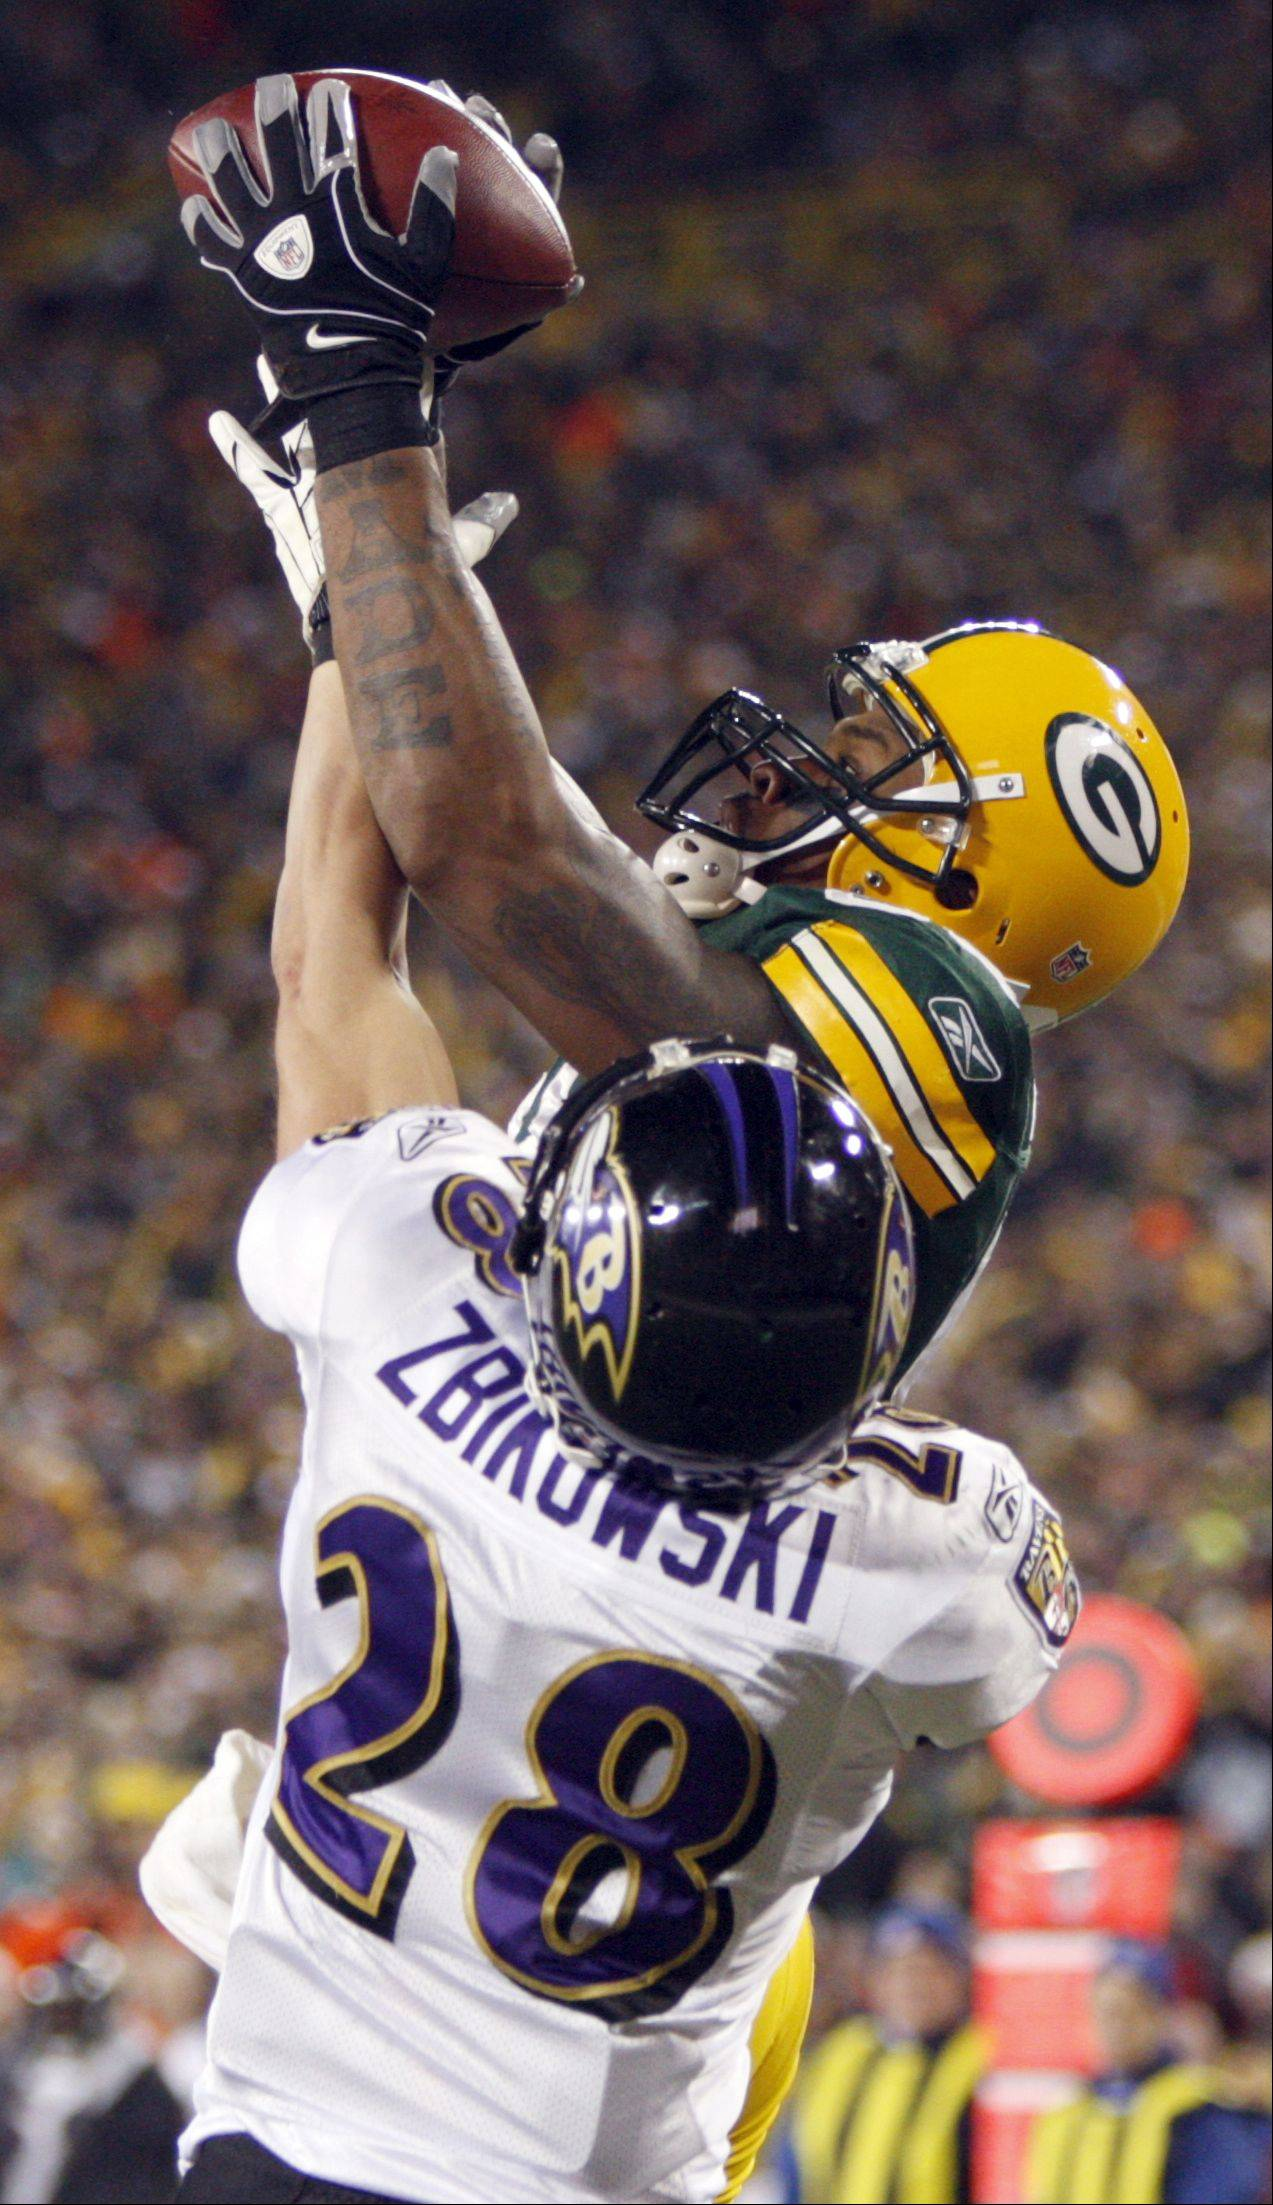 Green Bay Packers' Jermichael Finley pulls in a touchdown pass as former Baltimore Ravens safety Tom Zbikowski tries to break it up.